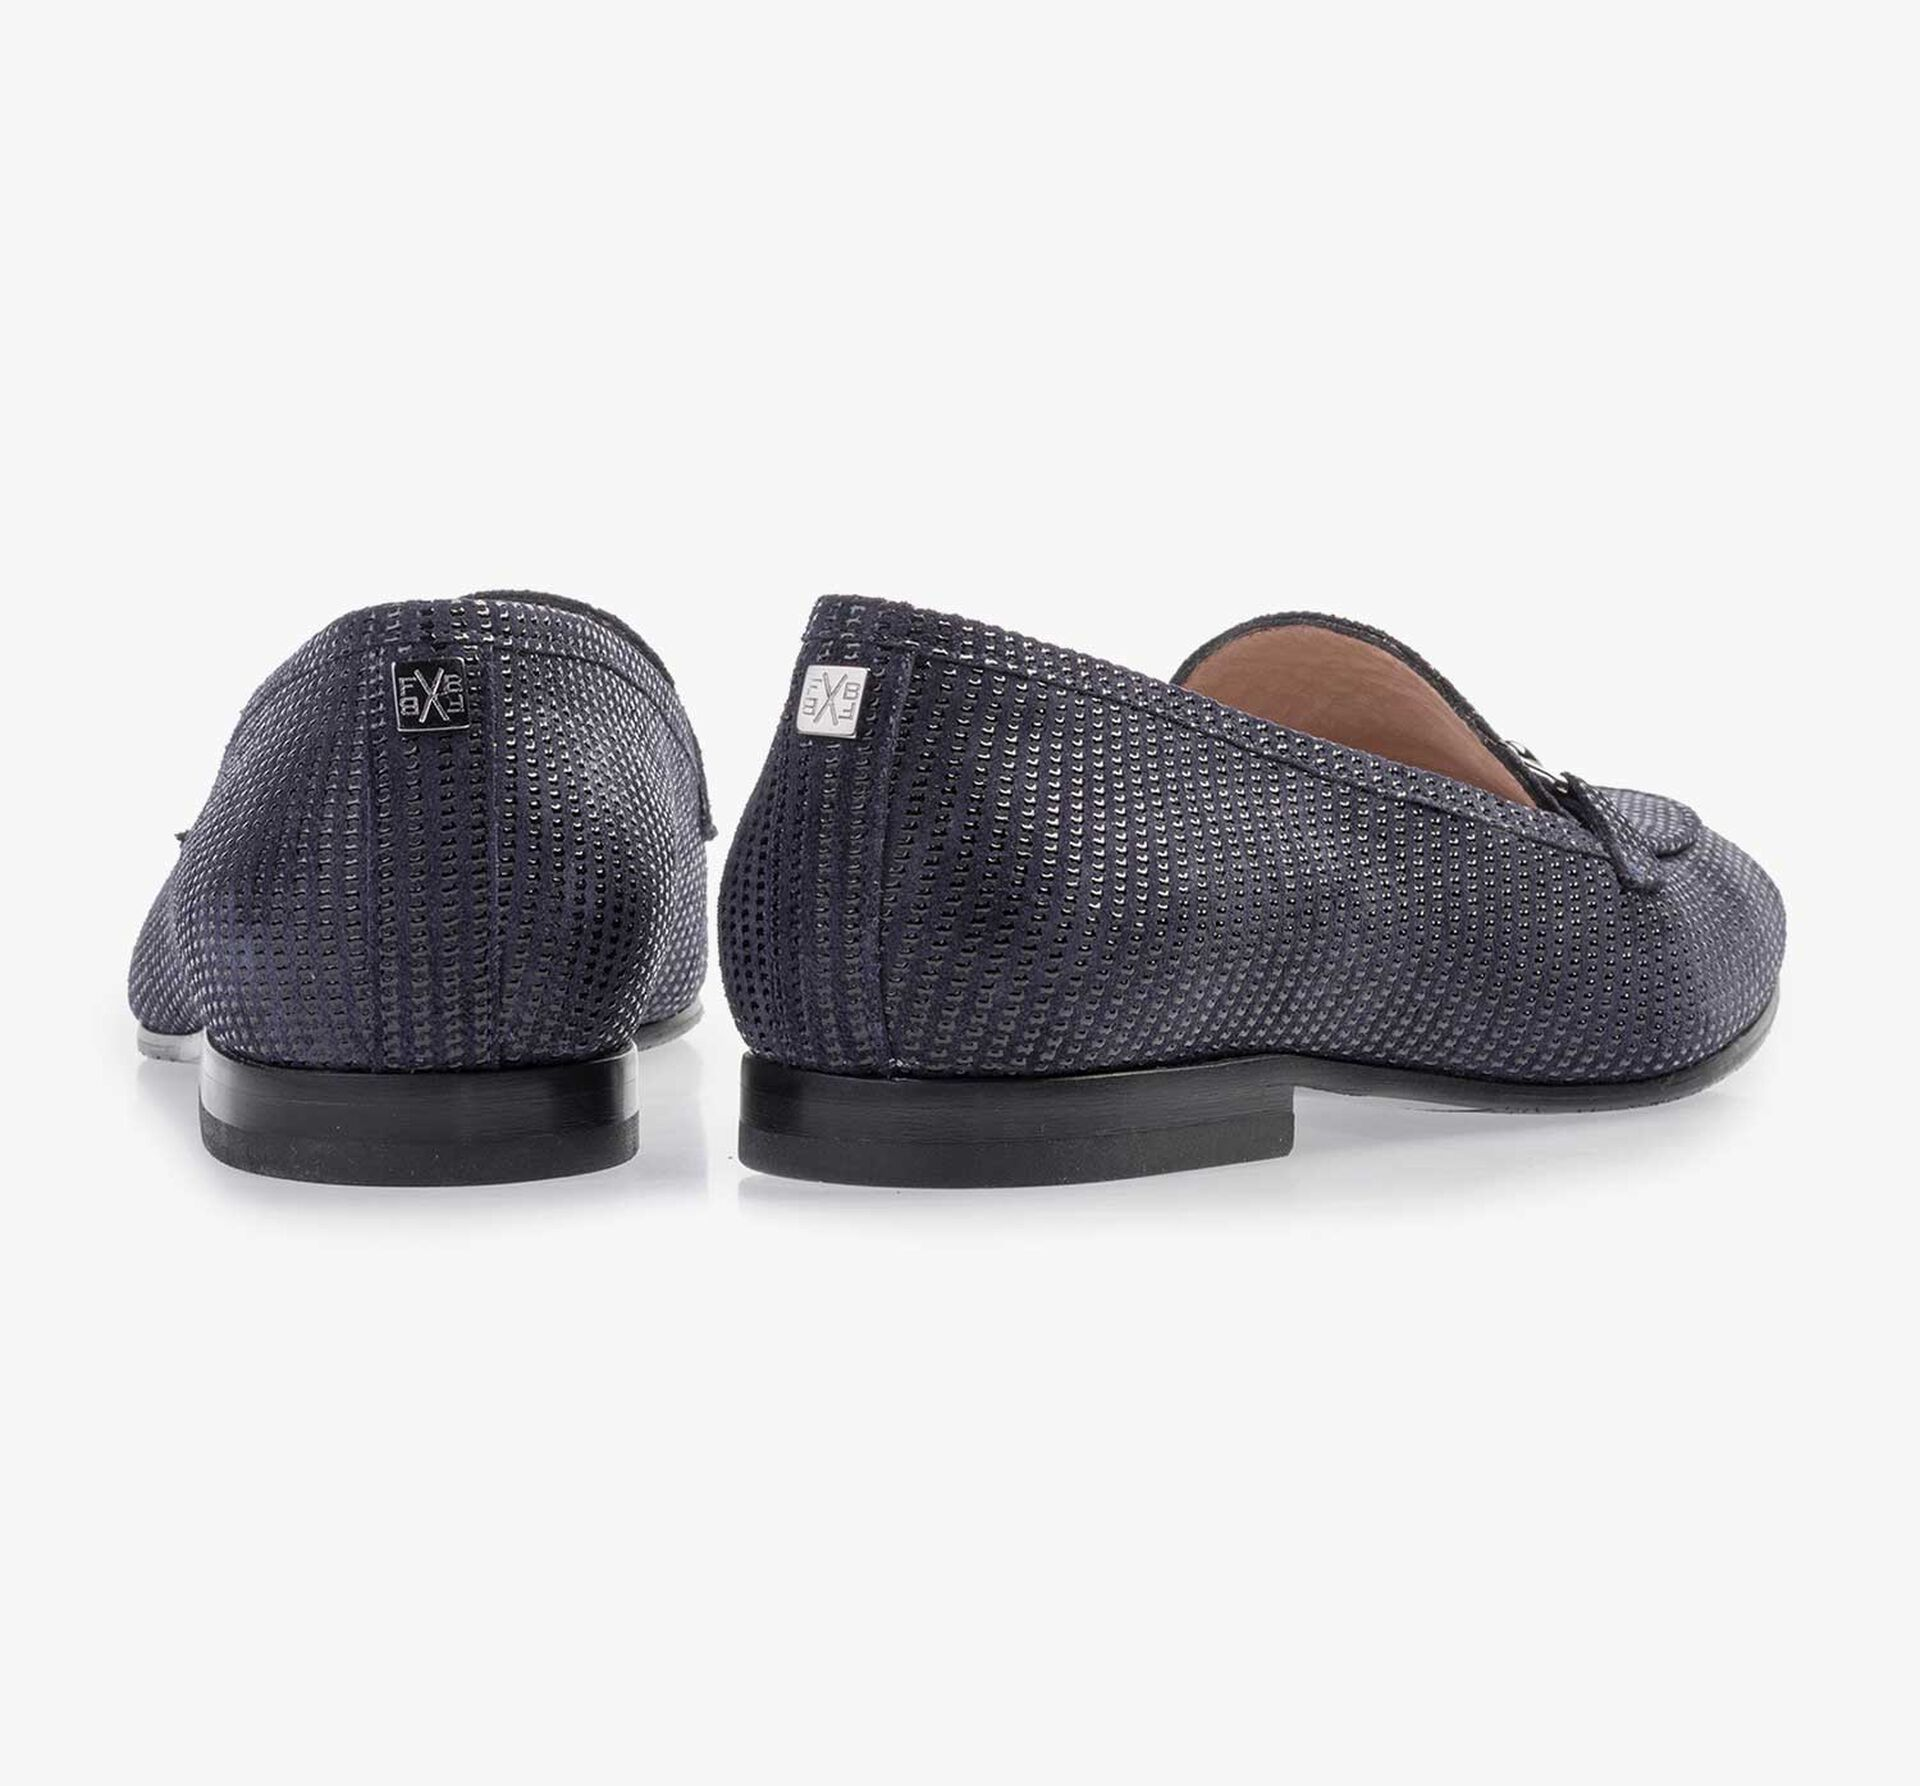 Dark blue suede leather loafer with printed motif